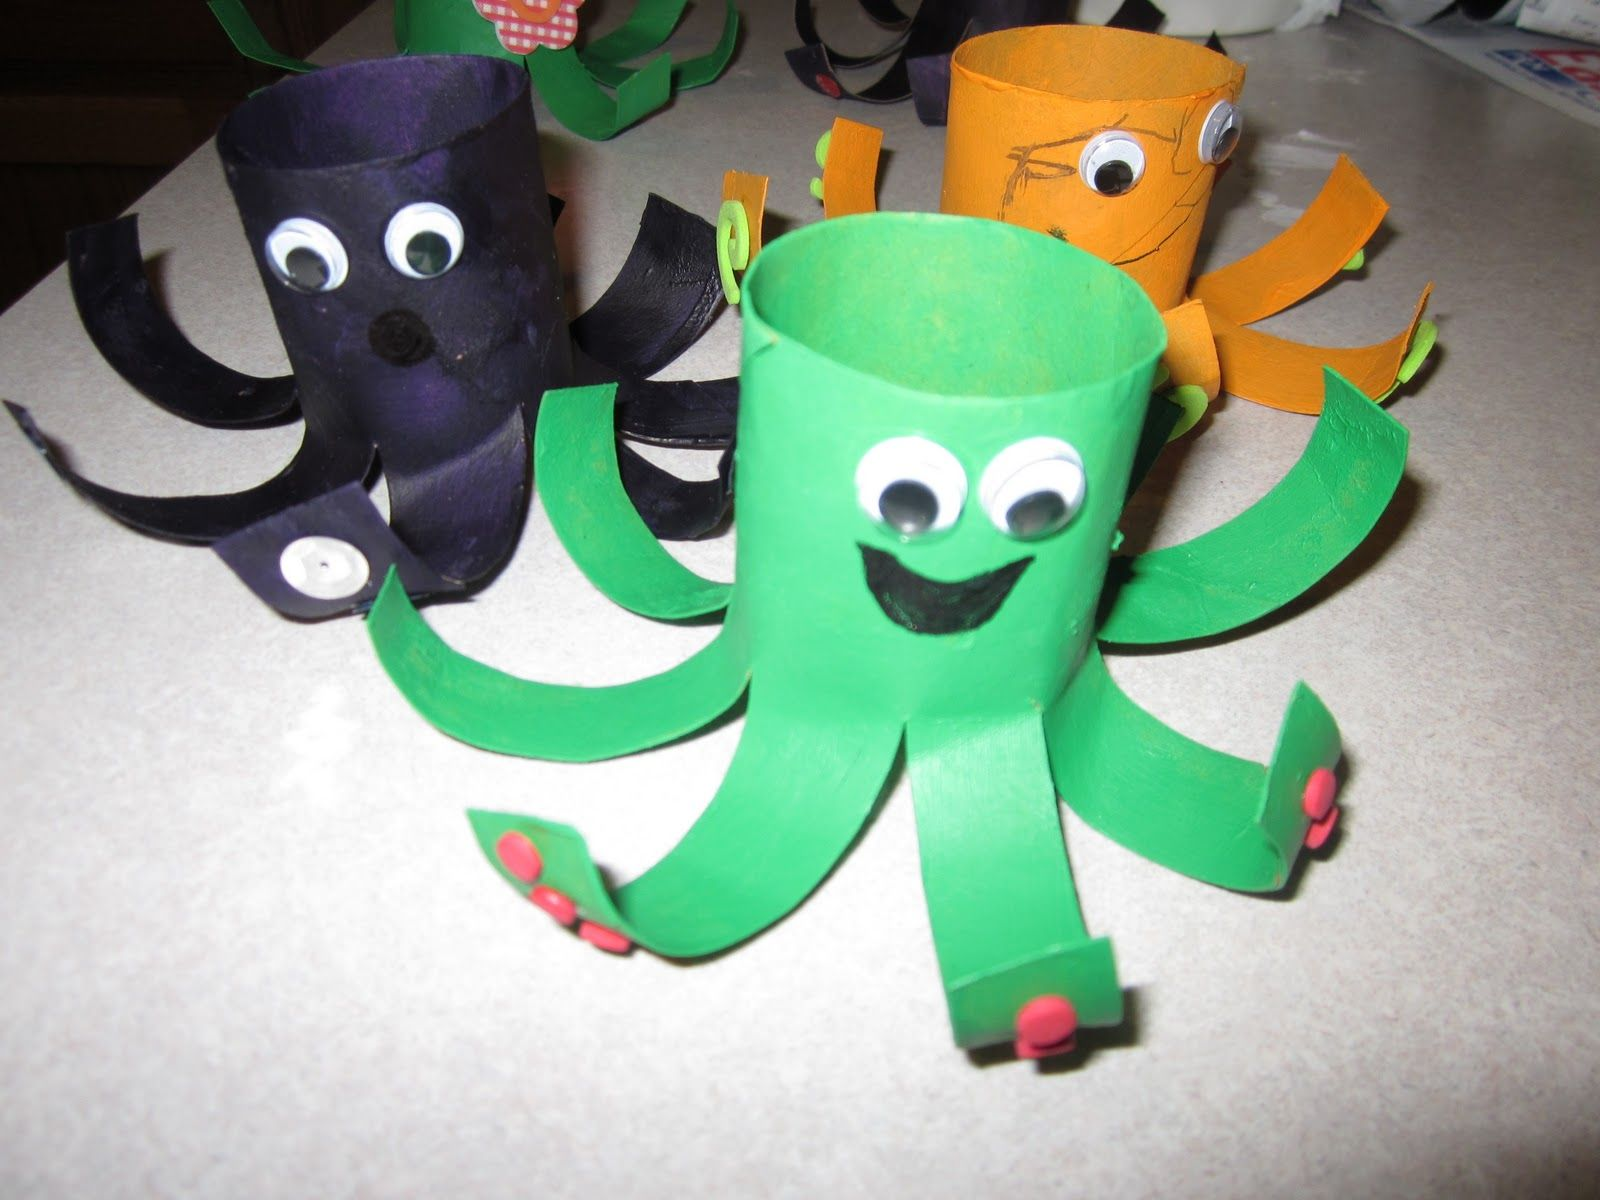 Construction Paper Crafts